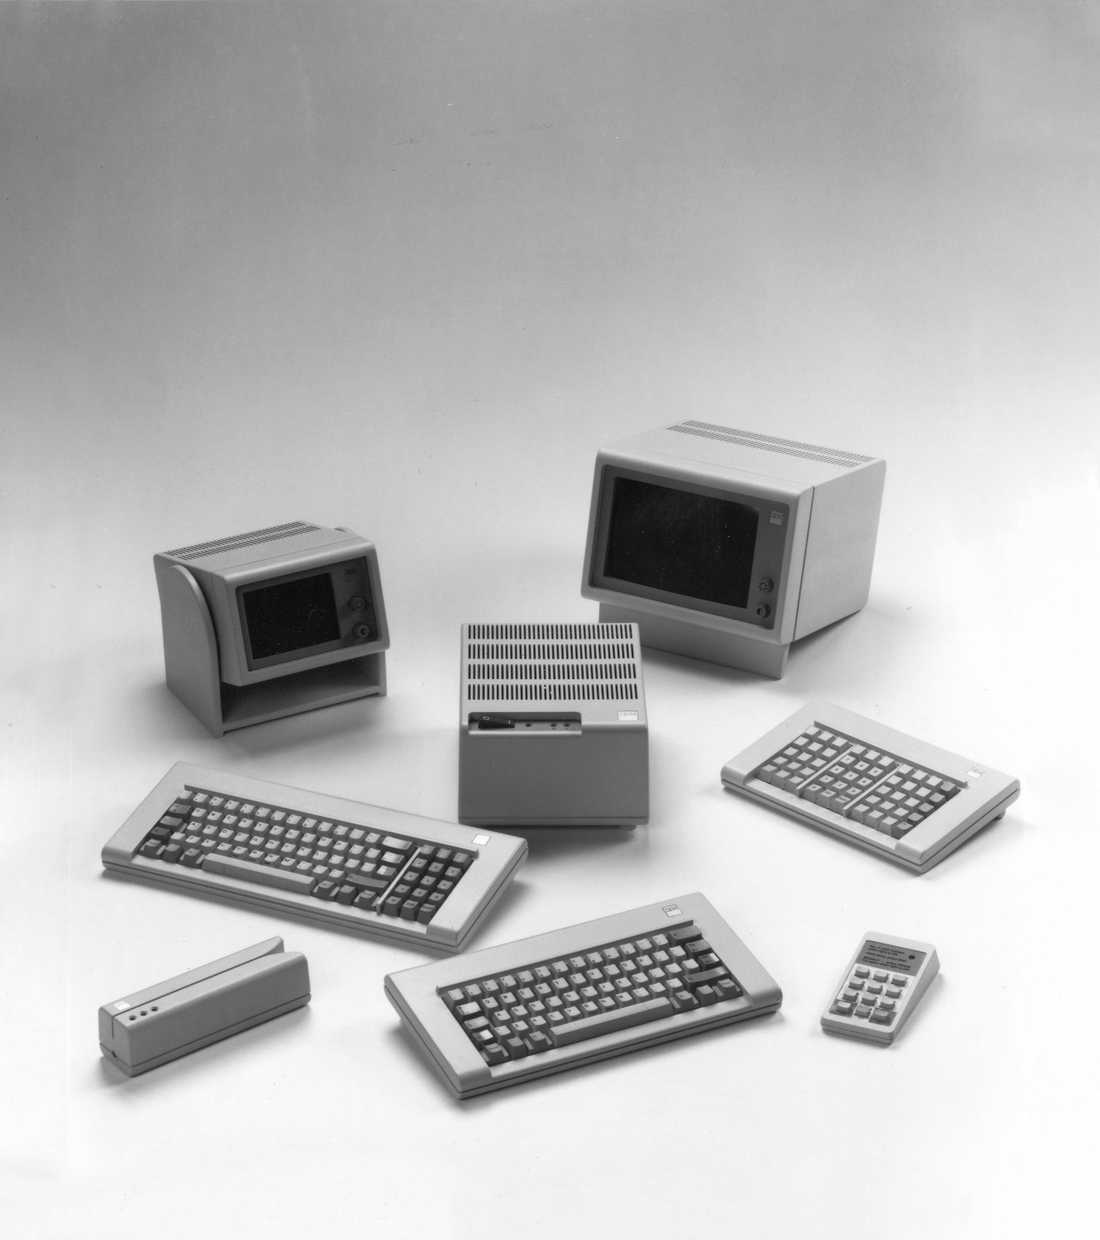 The components of the IBM 4700 Finance Communication System